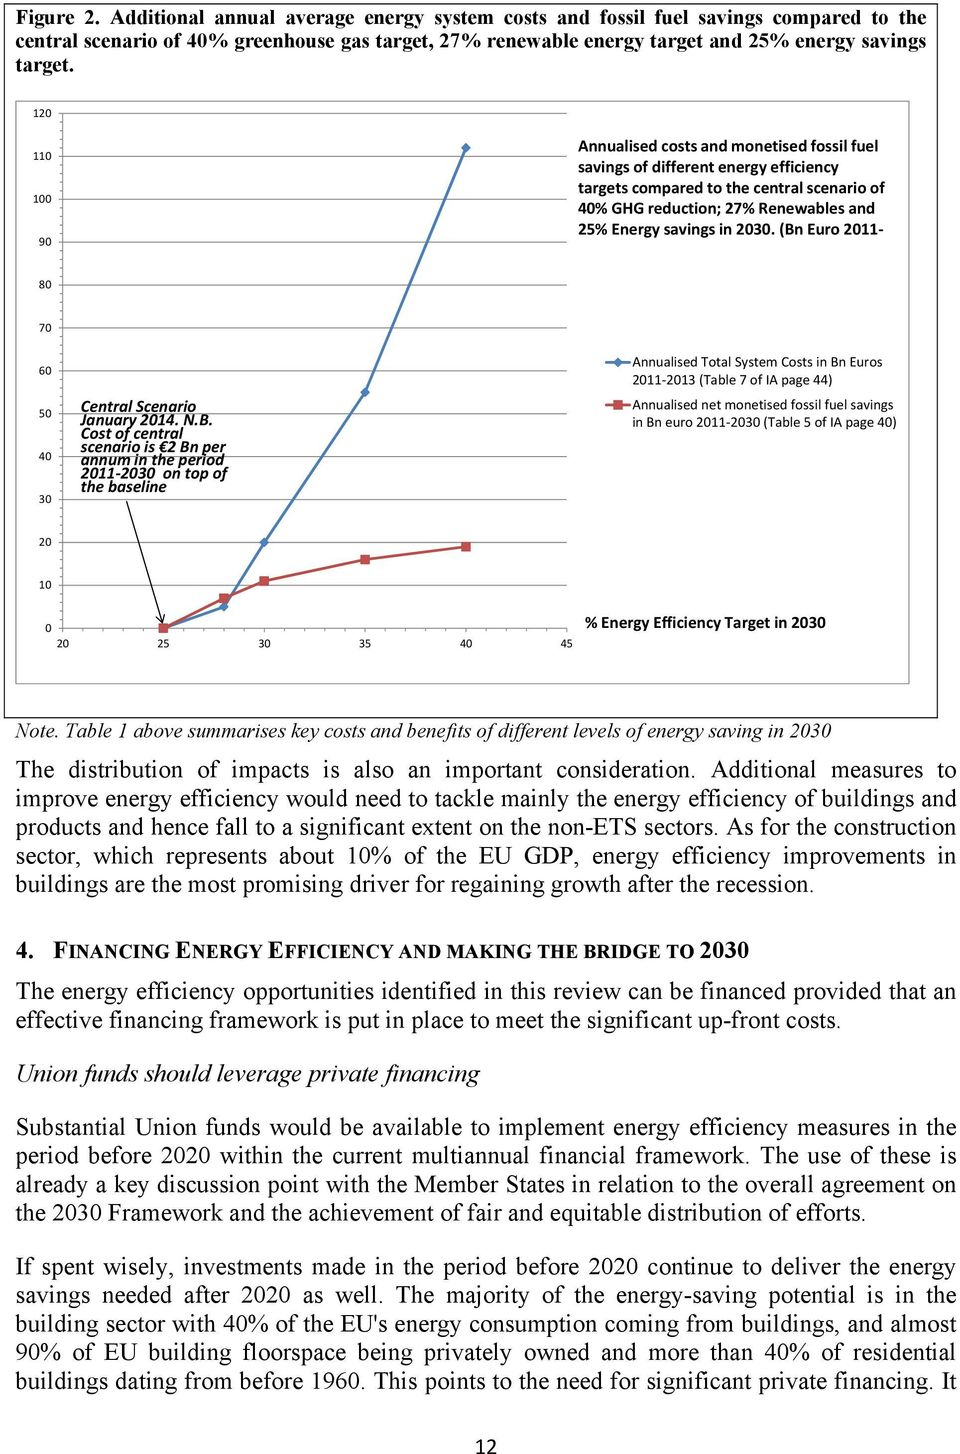 120 110 100 90 Annualised costs and monetised fossil fuel savings of different energy efficiency targets compared to the central scenario of 40% GHG reduction; 27% Renewables and 25% Energy savings